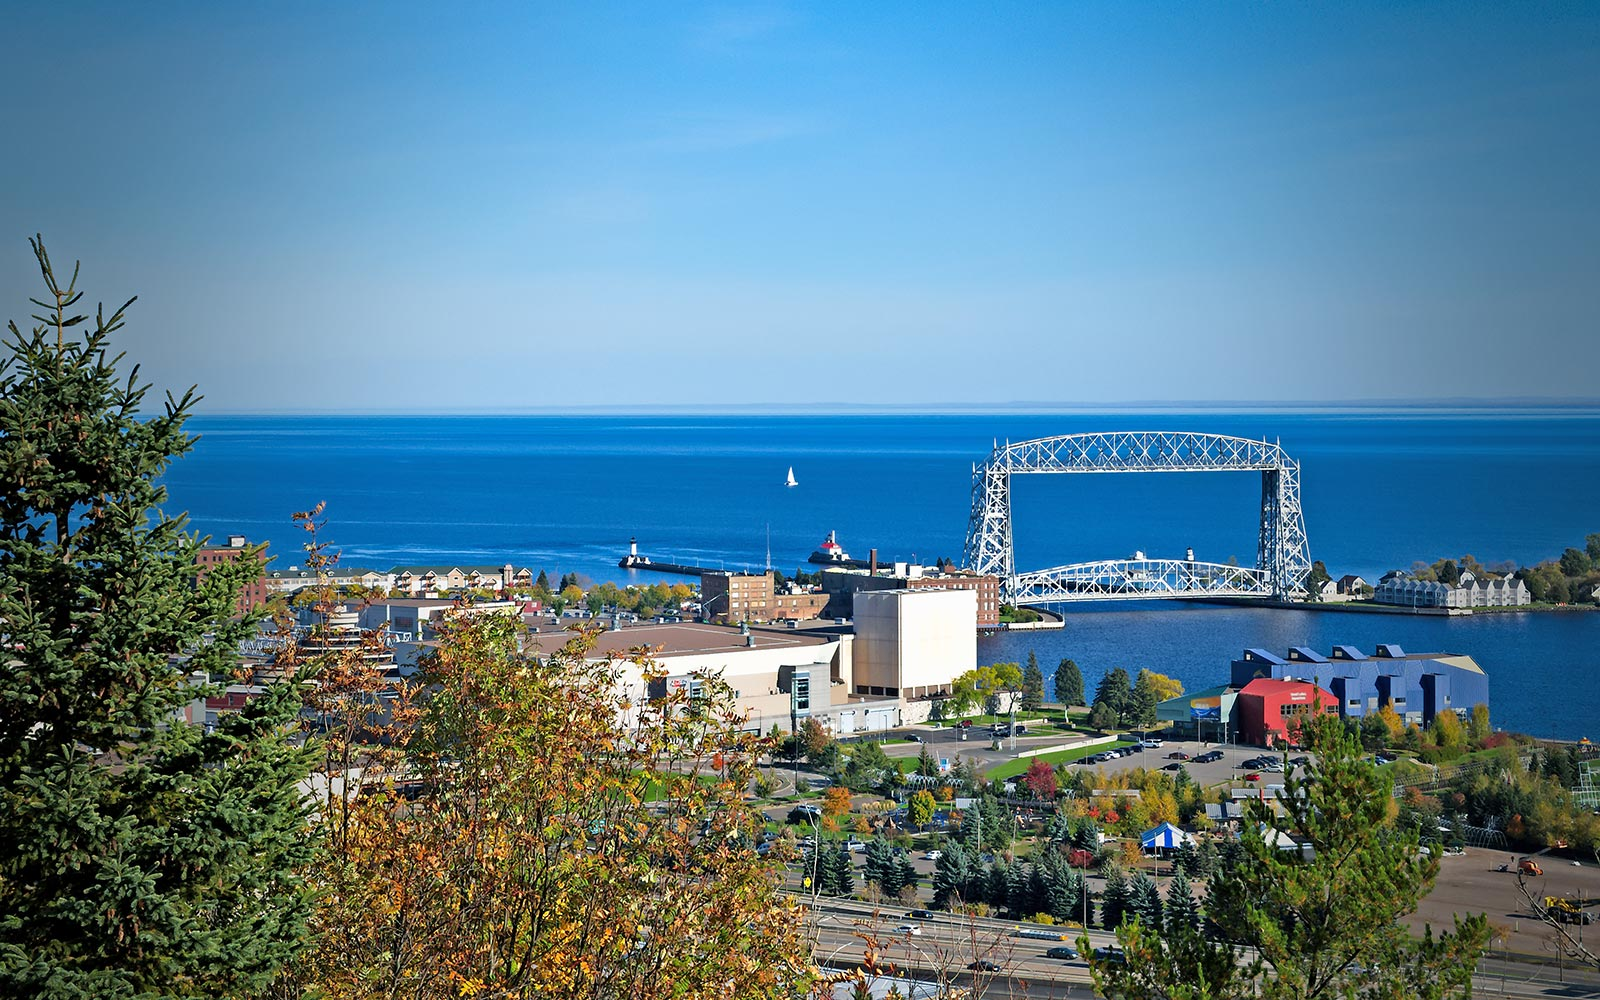 3 great reasons the aerial lift bridge is worth walking over to canal park this summerthis summer